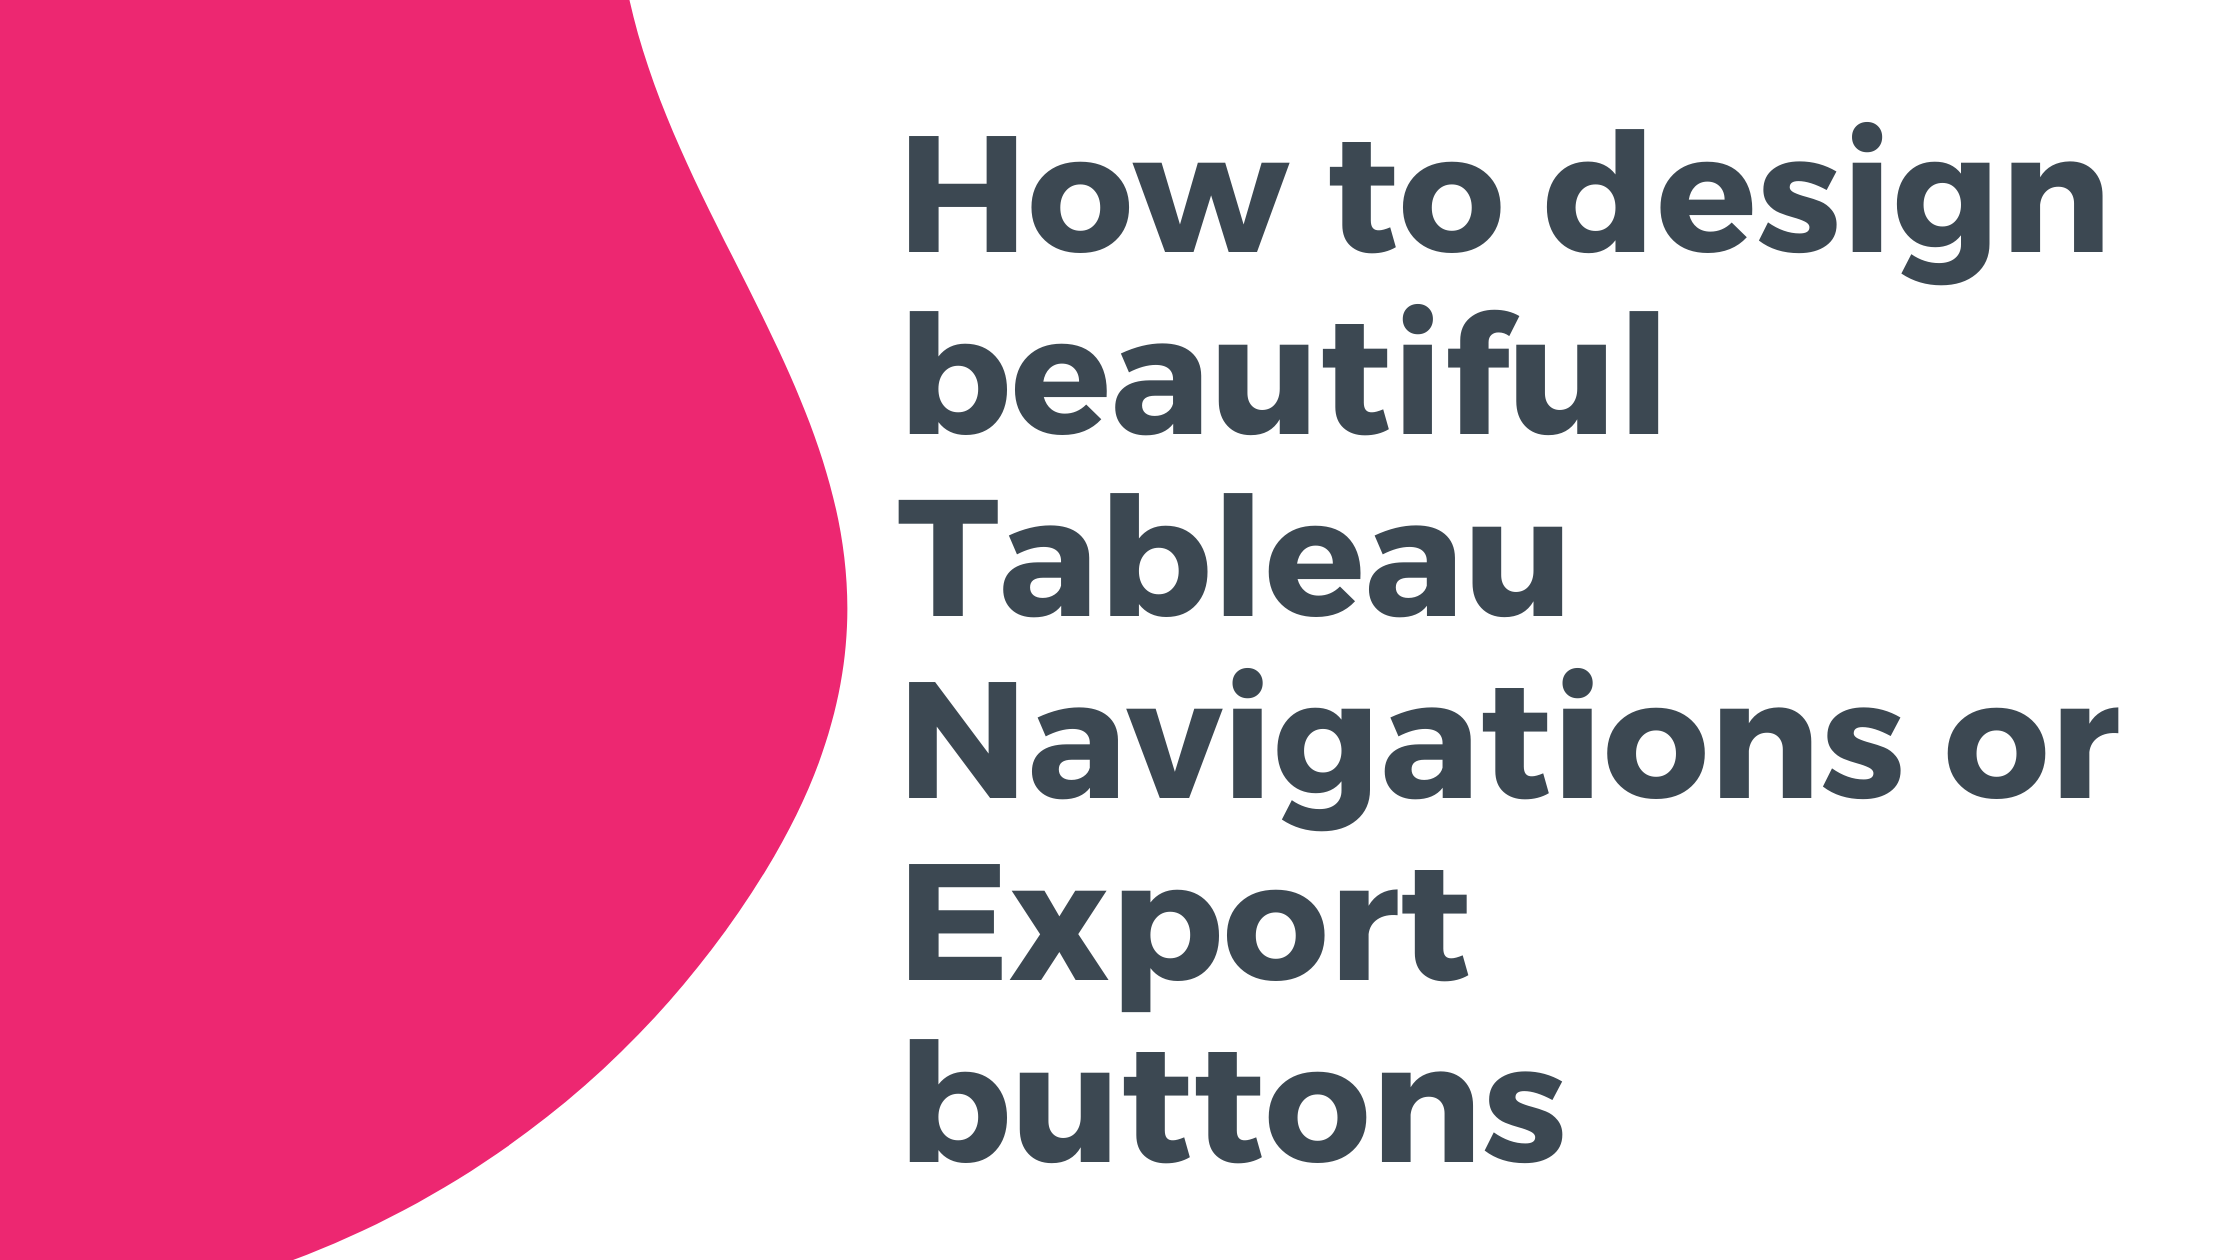 Tableau navigations and export buttons